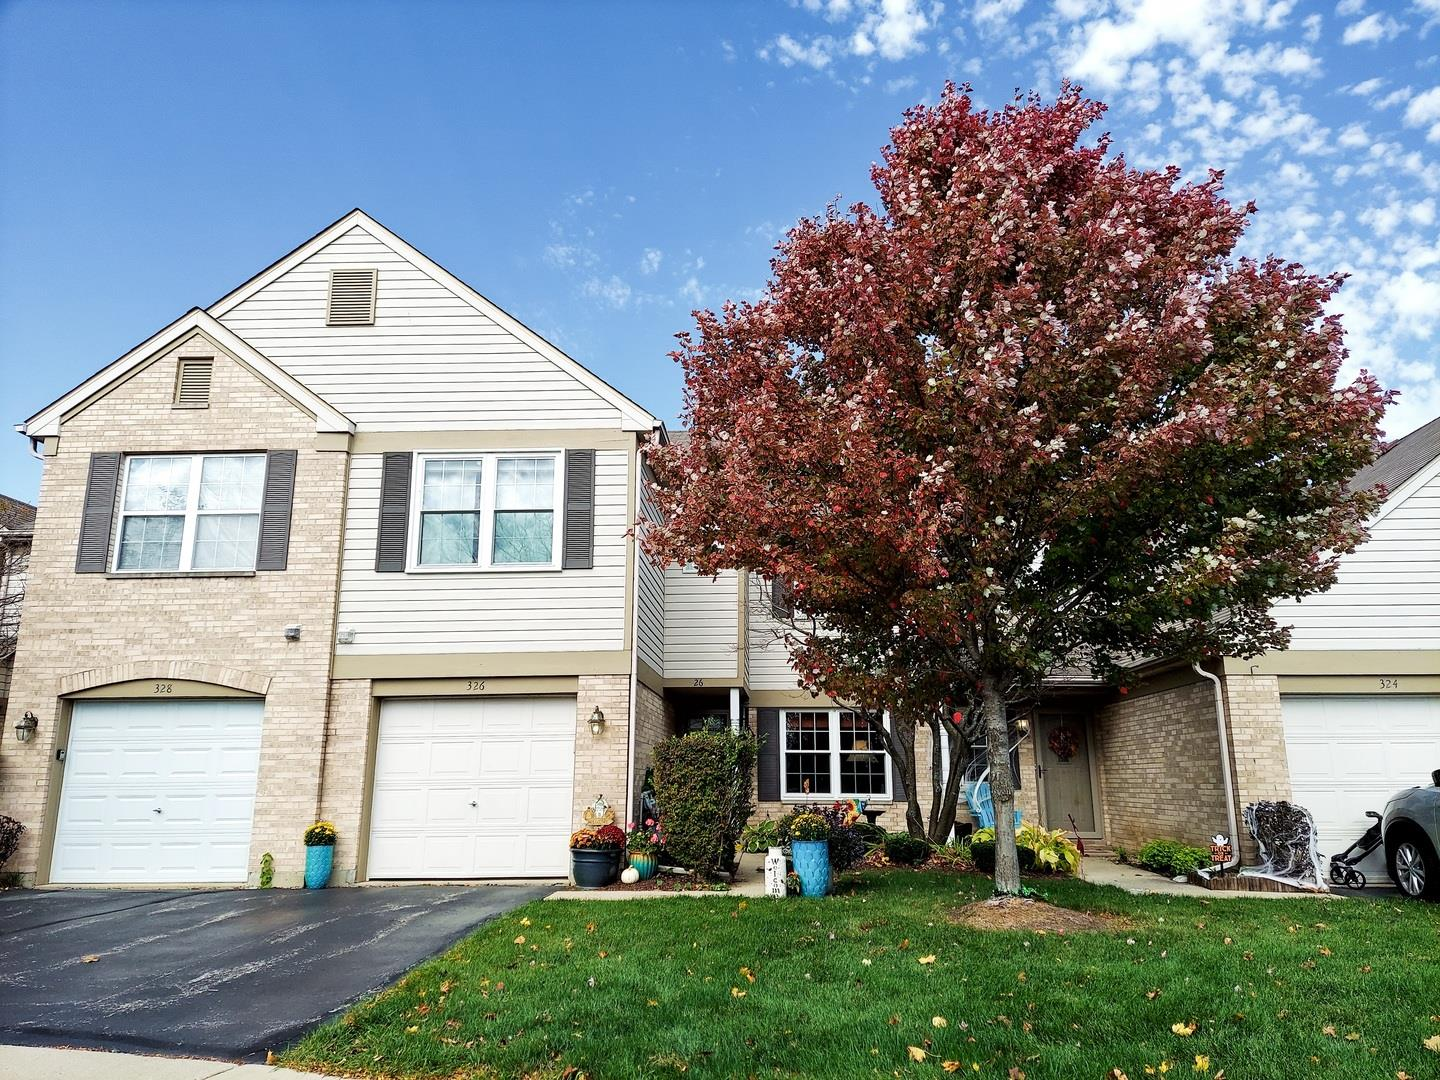 326 CRYSTAL RIDGE Drive #326, Crystal Lake, IL 60012 - #: 10905174